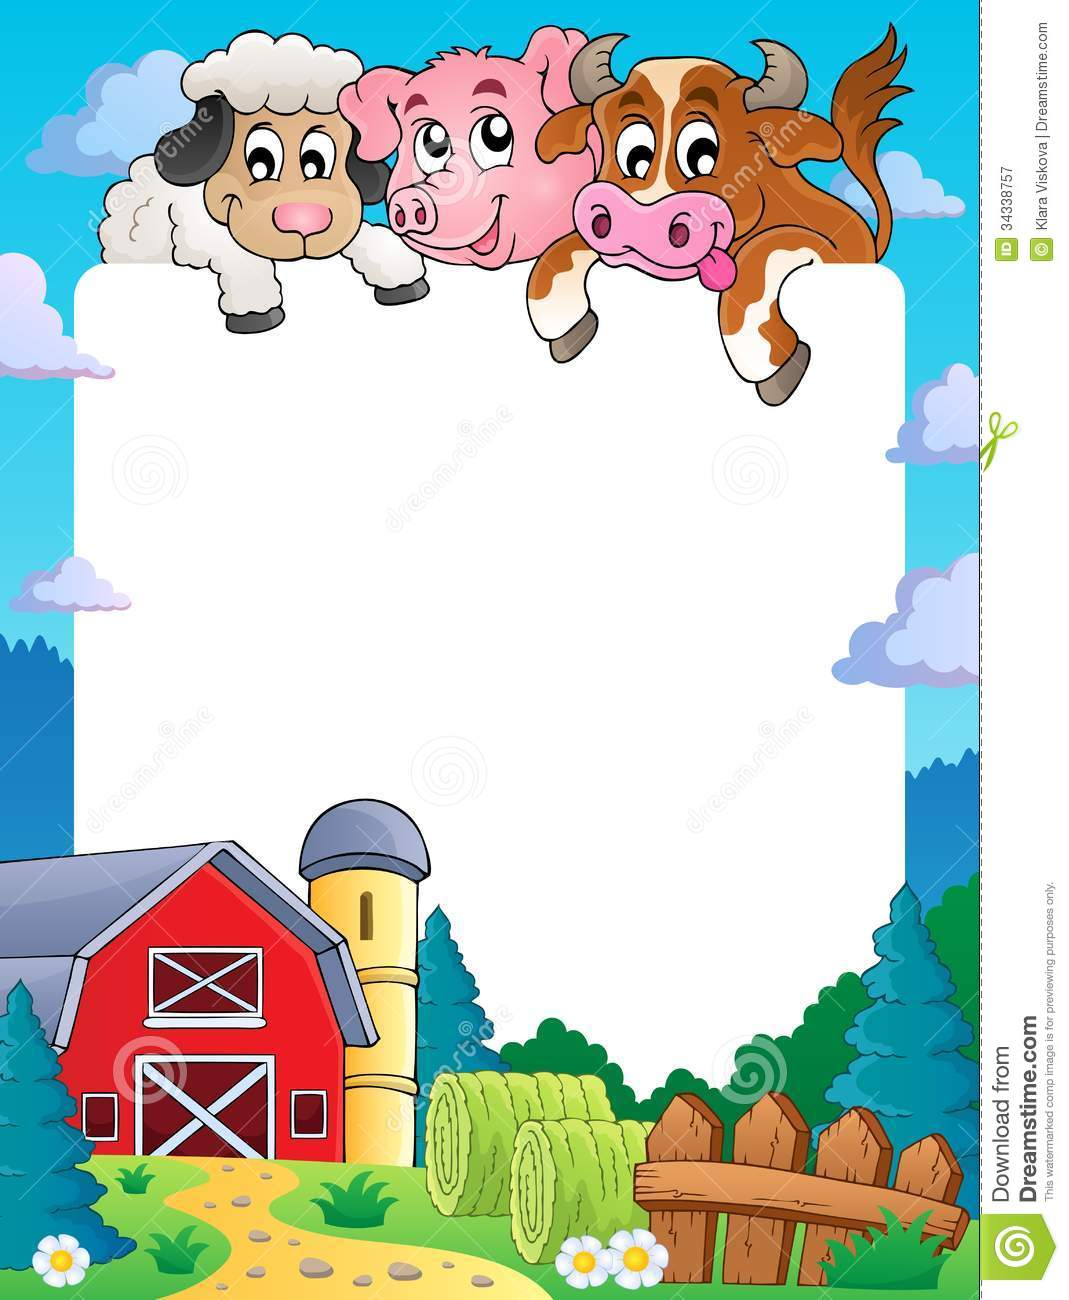 Farm Theme Frame 4 Royalty Free Stock Photography - Image: 34338757